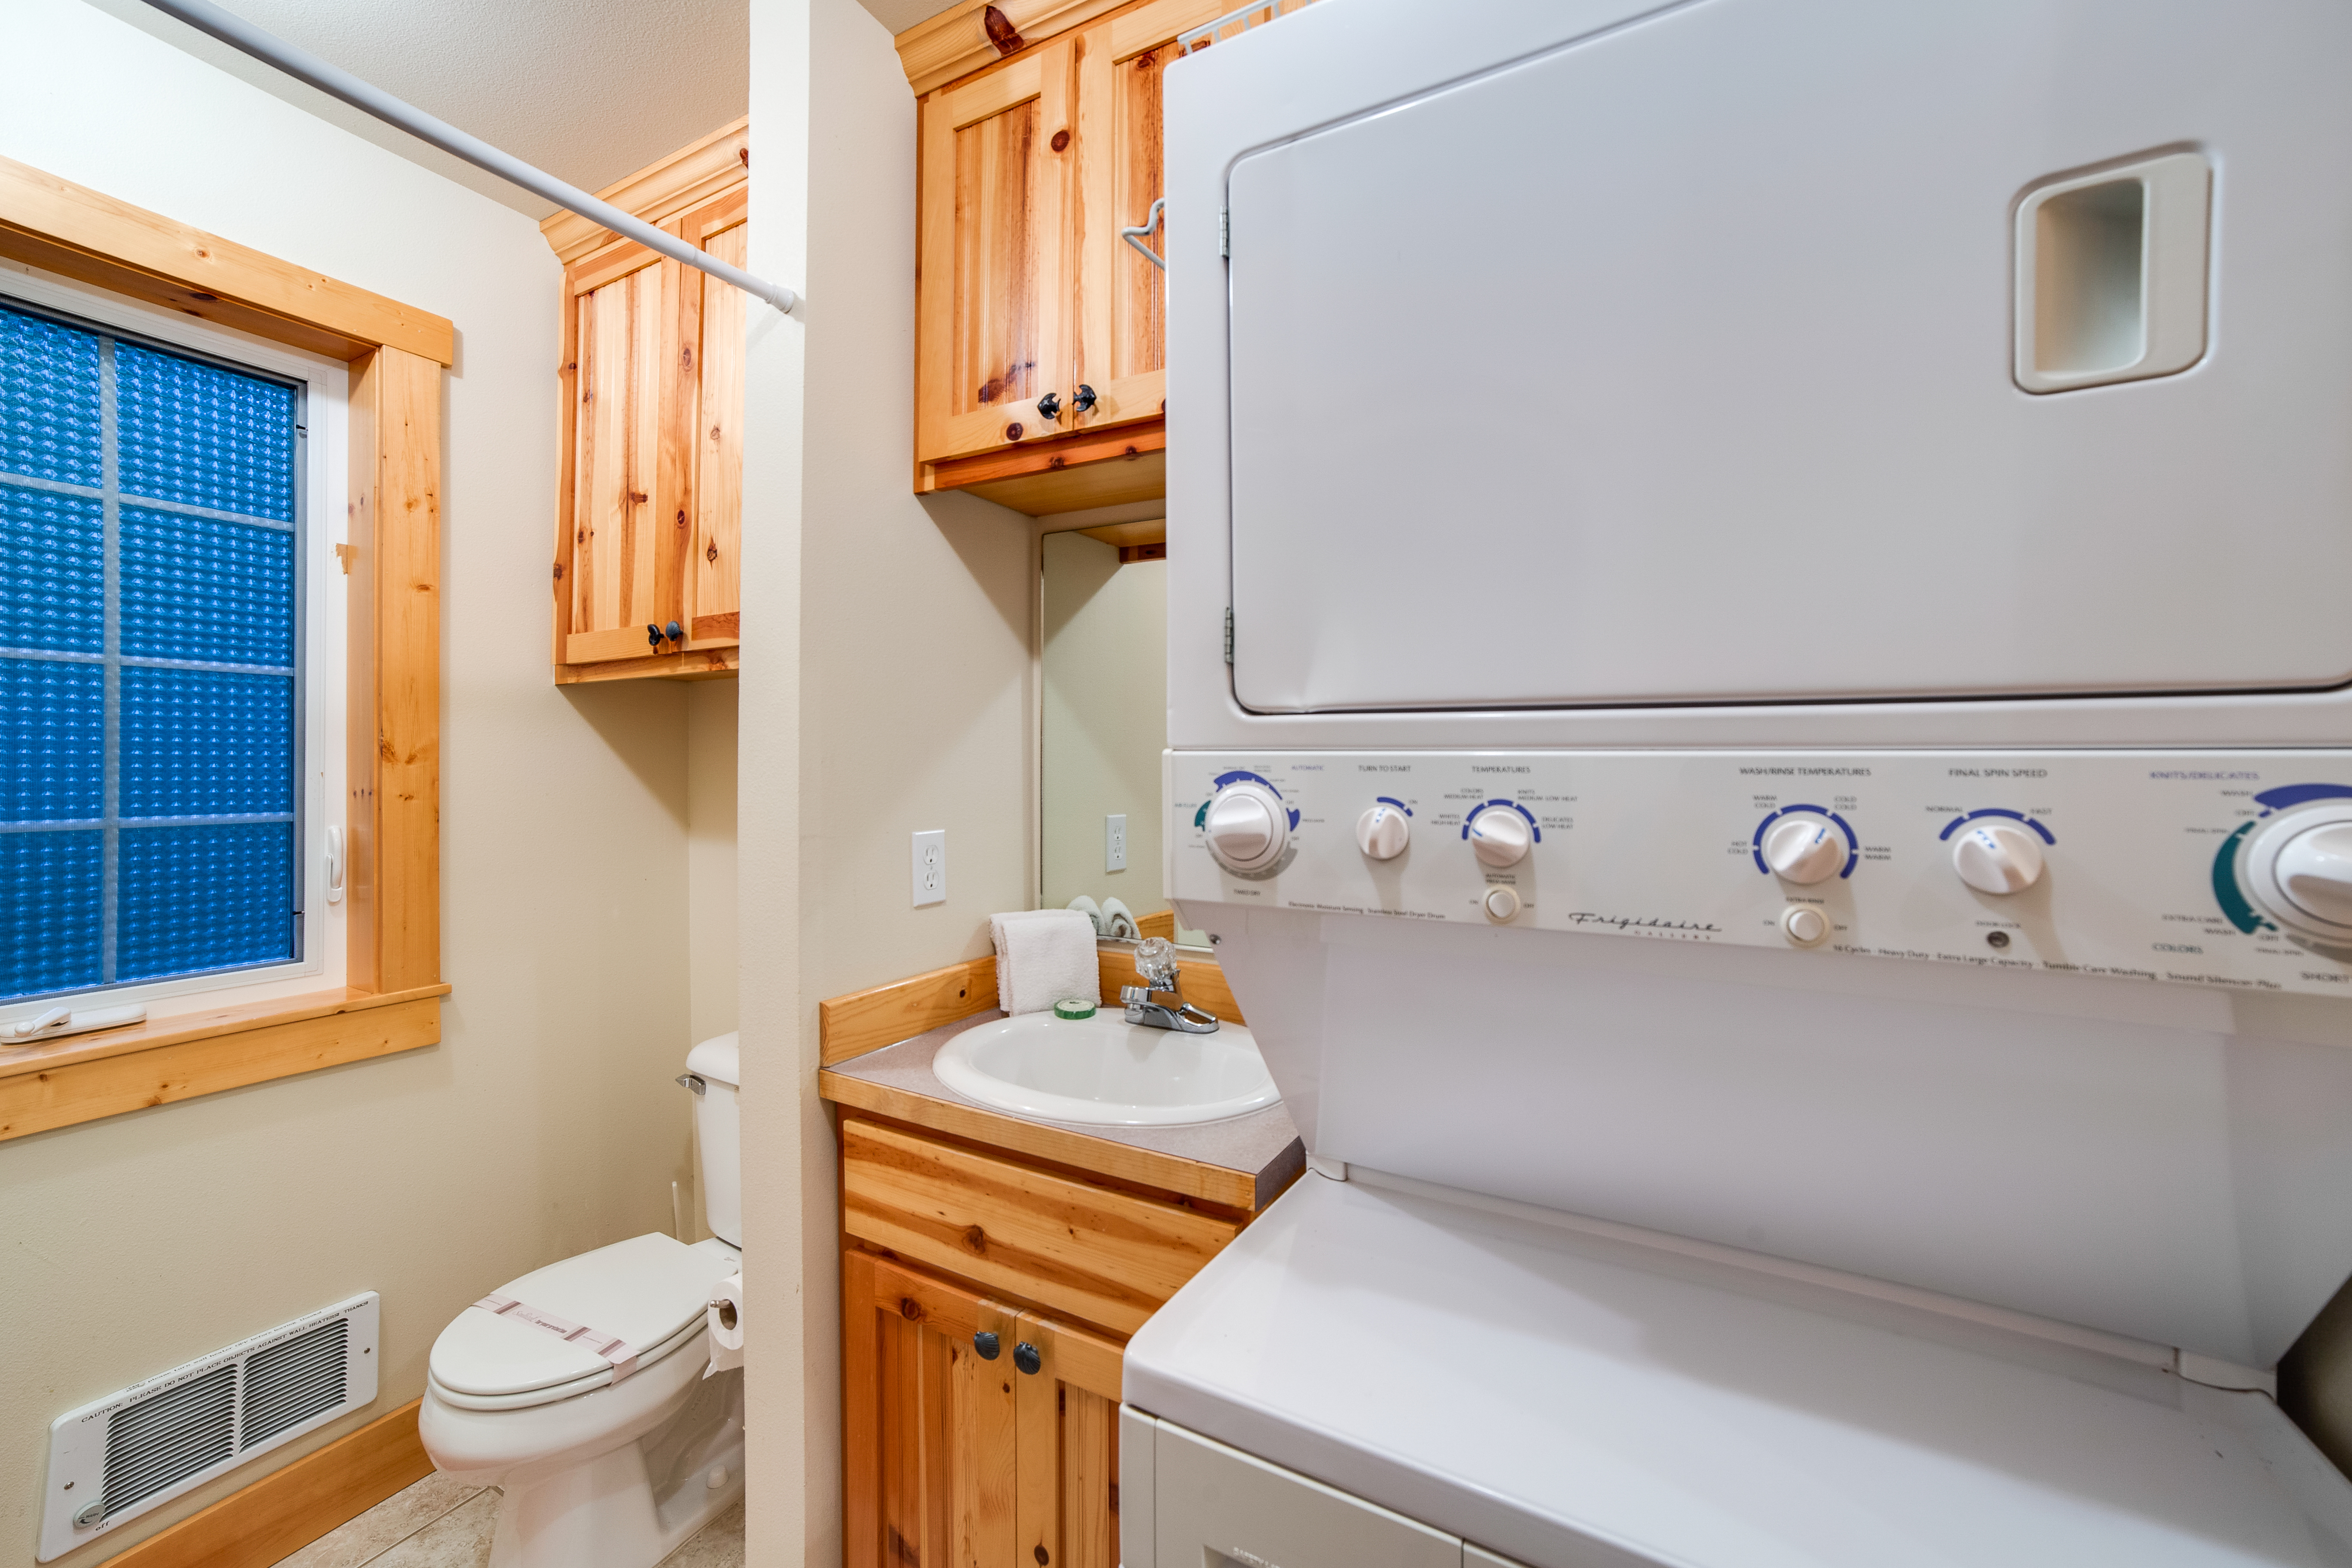 Entry bathroom with laundry area